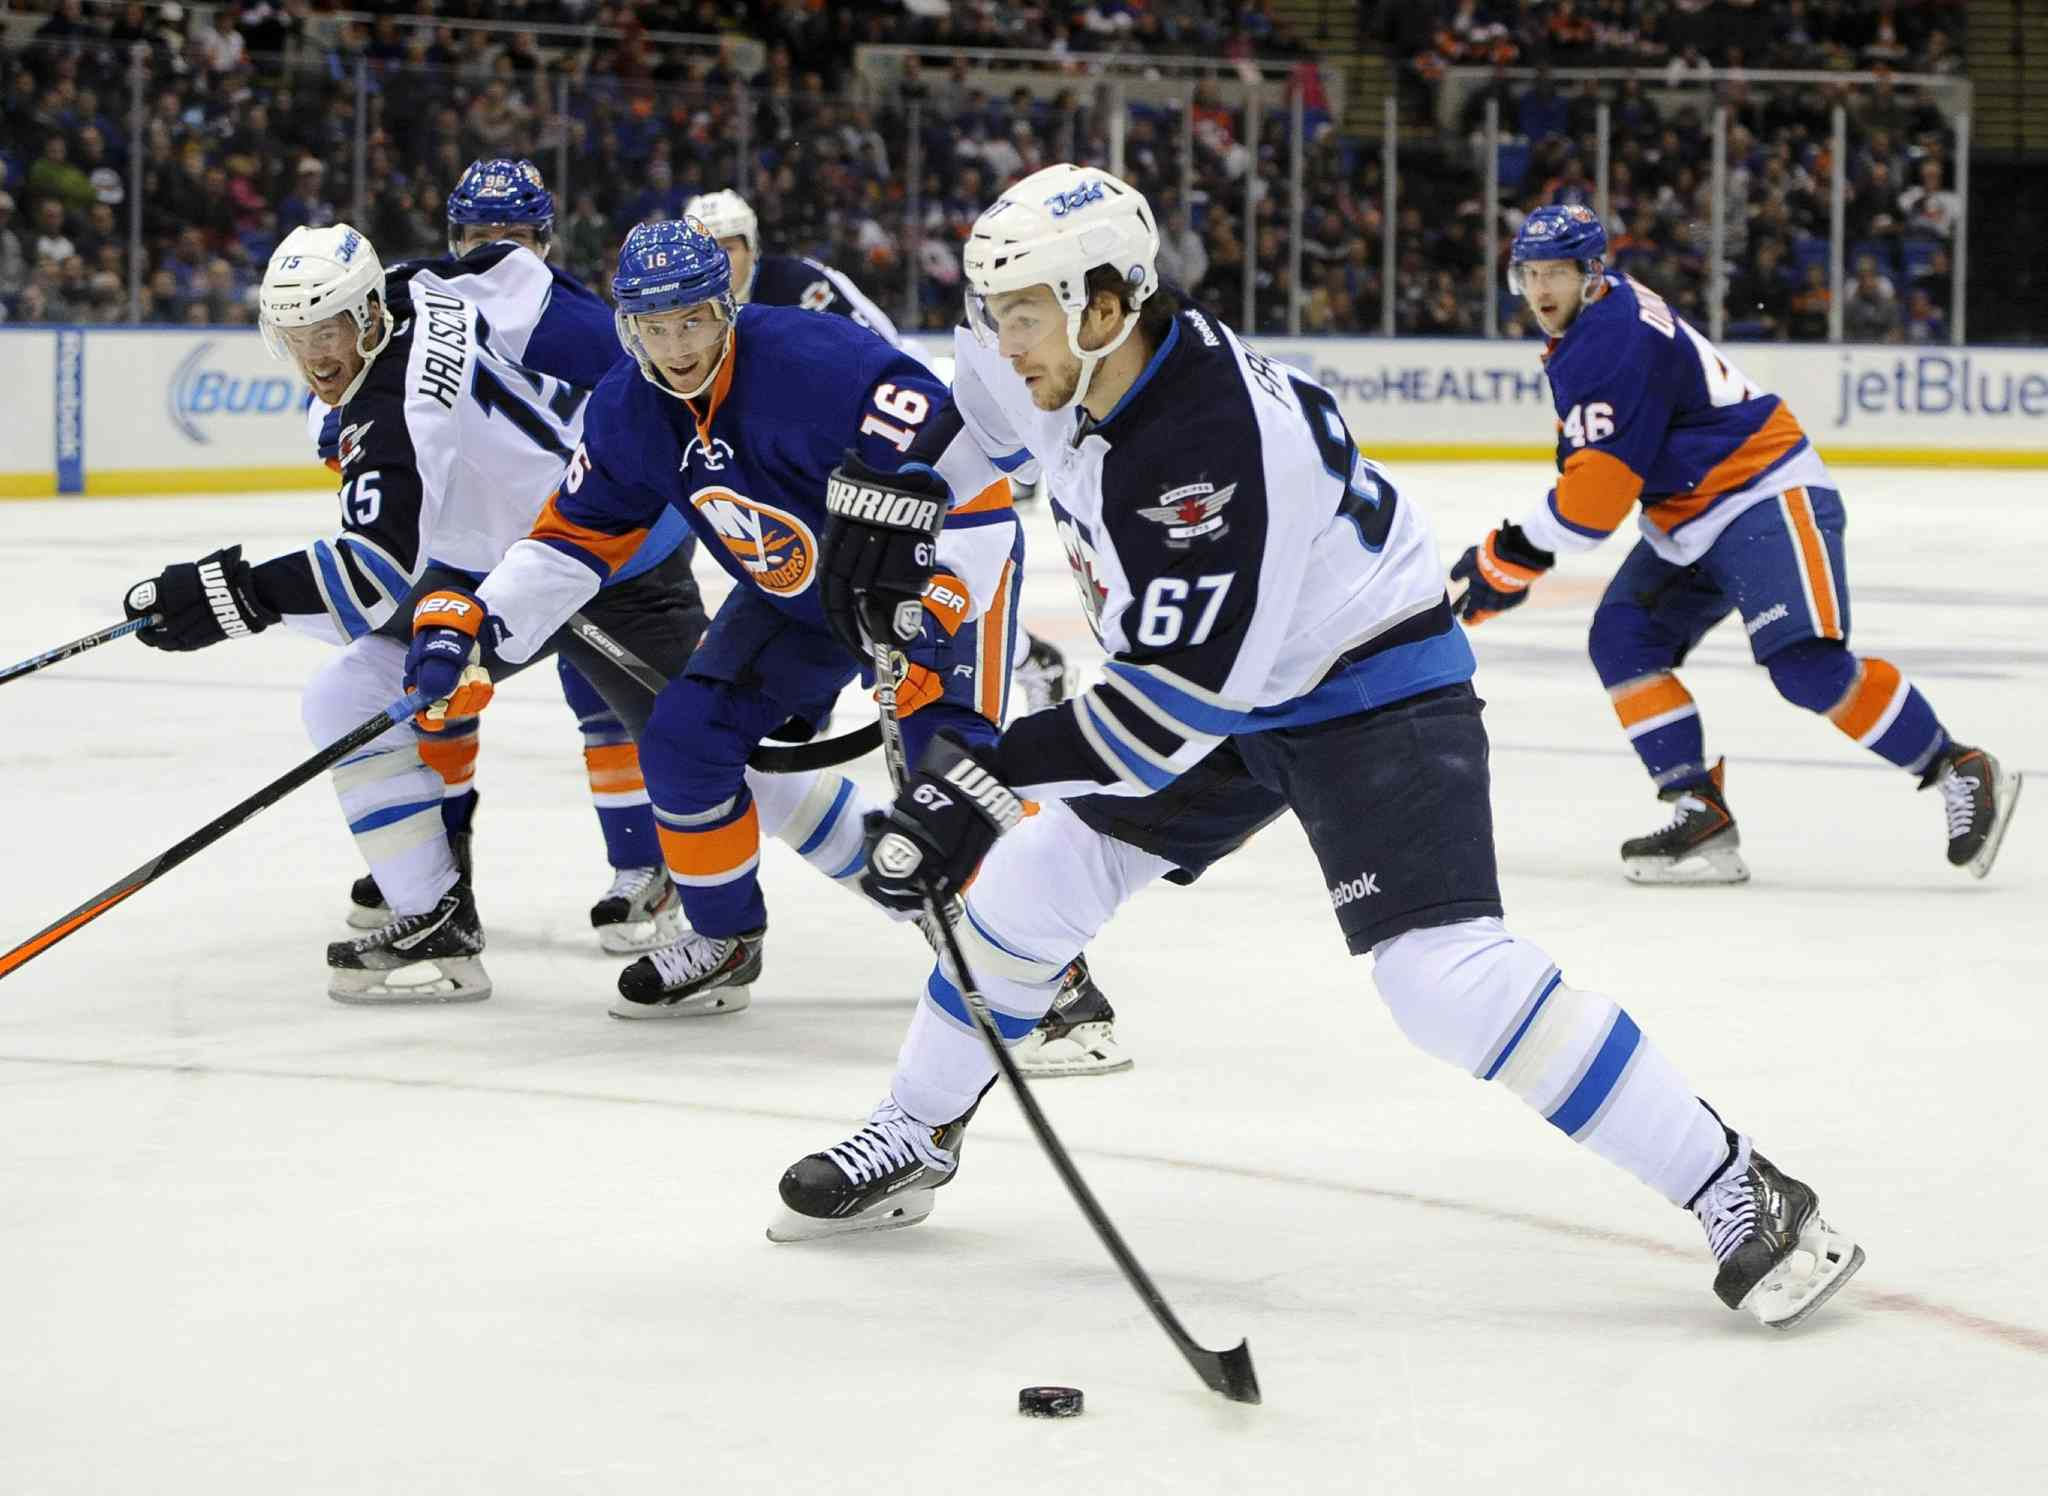 Winnipeg Jets forward Michael Frolik (67) takes a shot on goal as Peter Regin (16) of the New York Islanders in the first period.